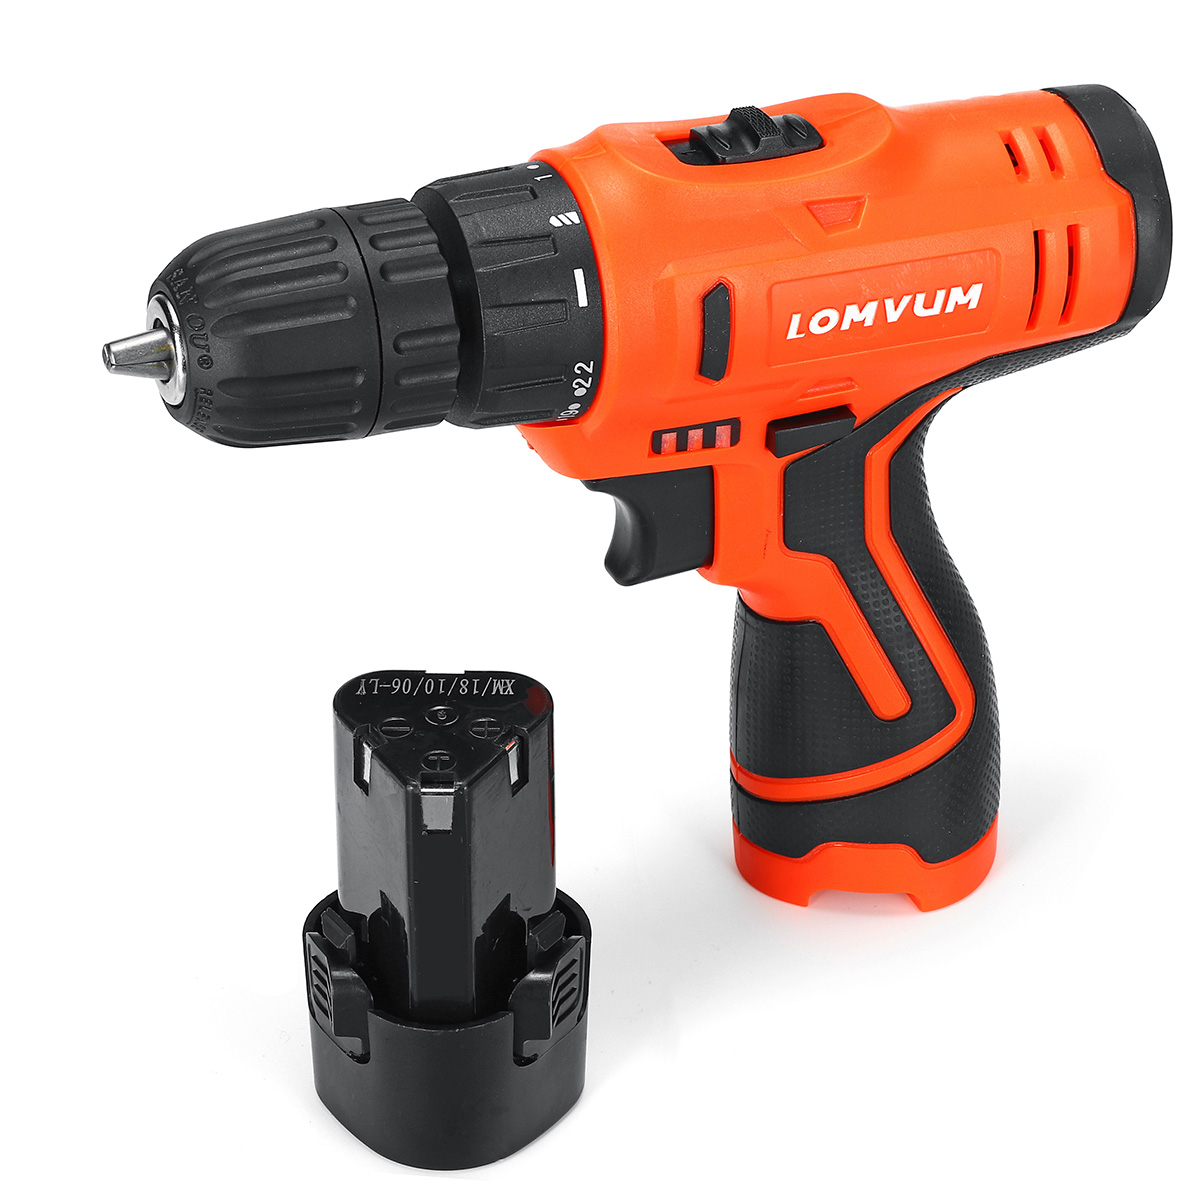 12V Rechargeable Home Cordless Electric Drill Li-Ion Battery Driver Hand Kit Adjust 2 Speed Waterproof Power Tools